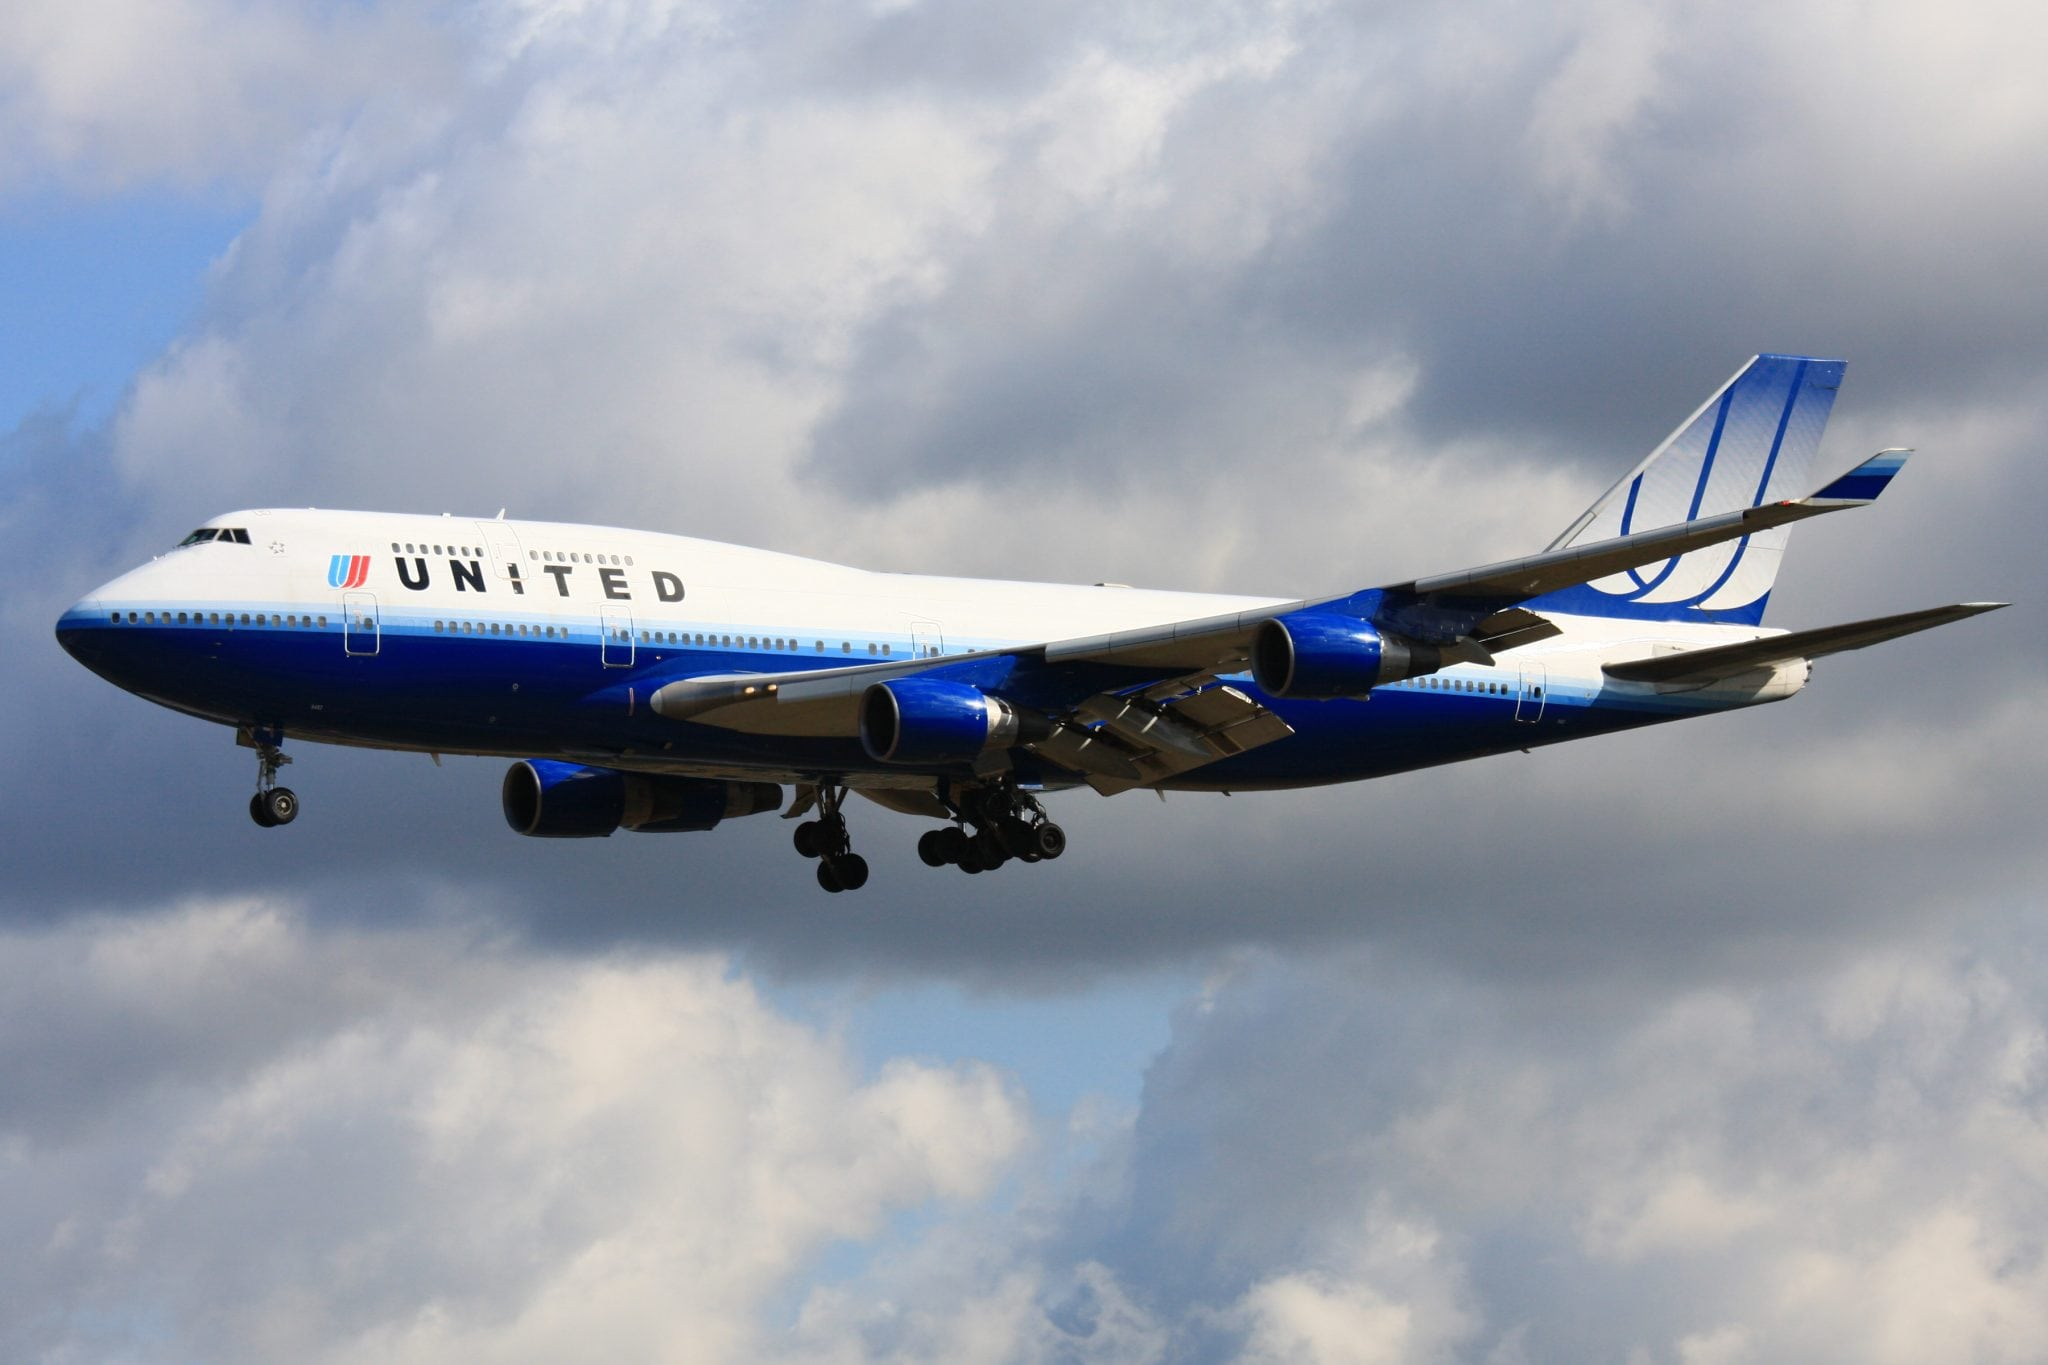 A United Airlines flight